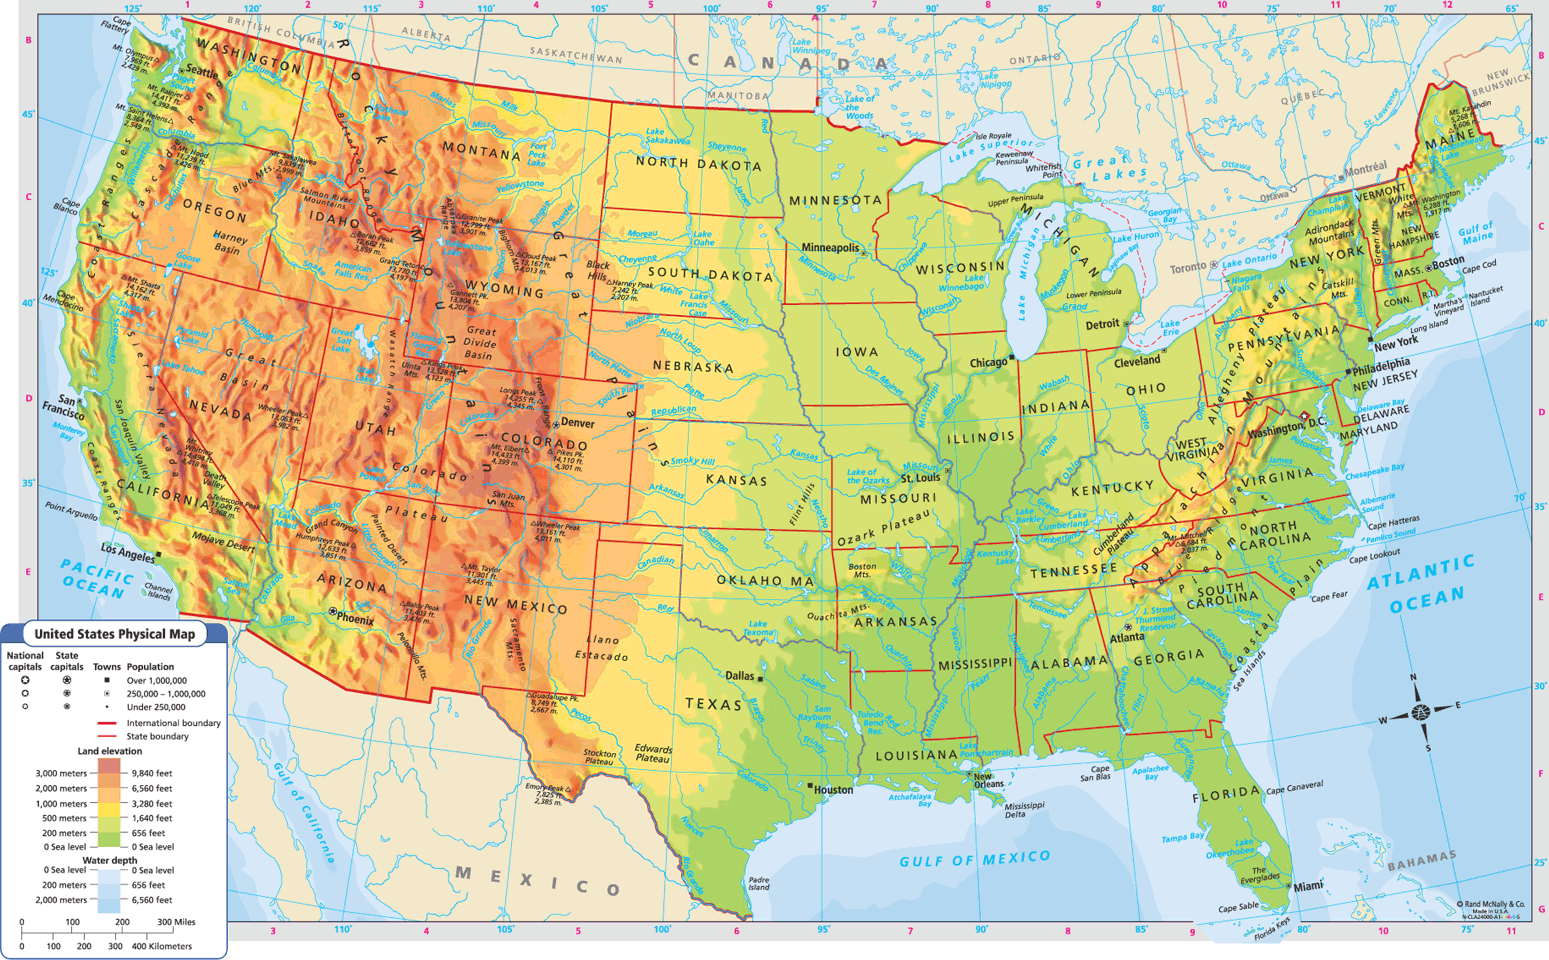 topographic map of us mountain ranges 2c89109d42178de8a367c0228f169bf8 In 2020 Us Geography